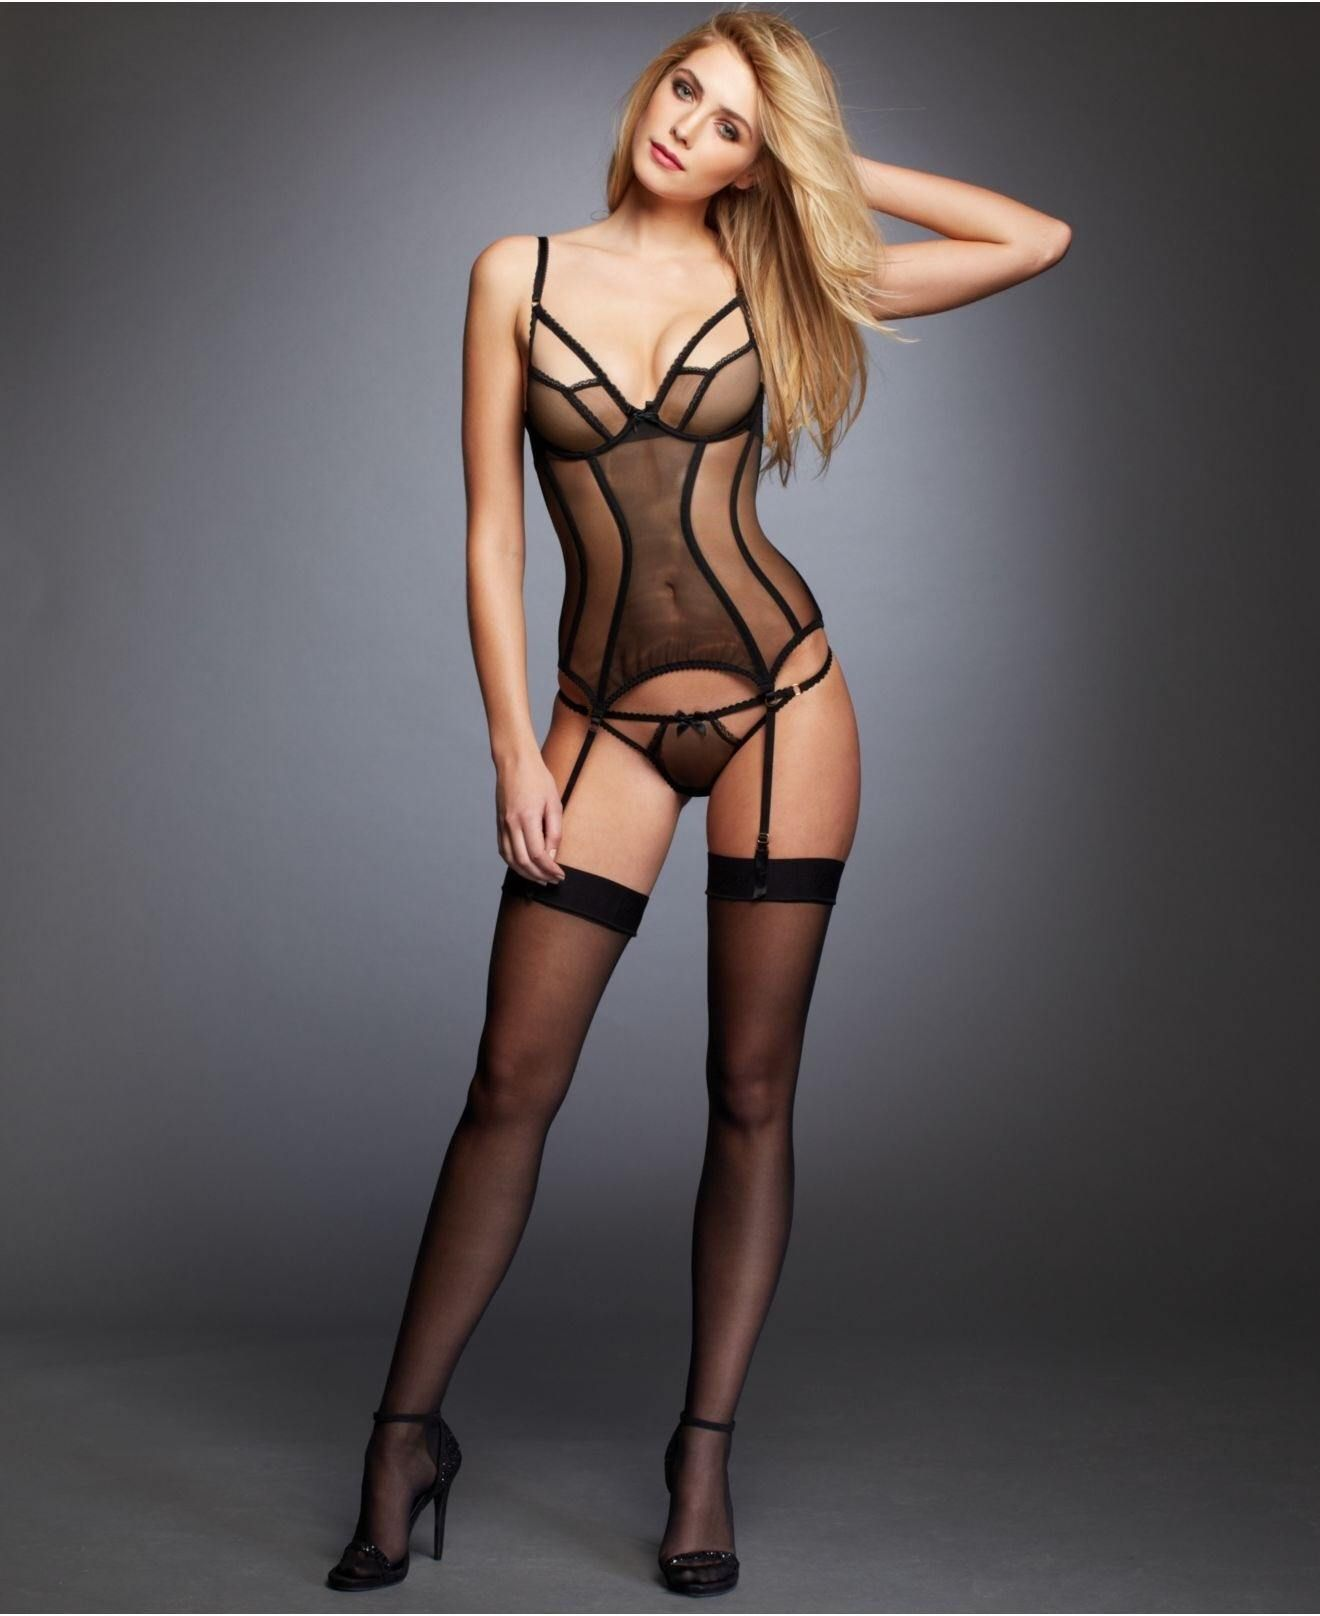 a98afd2991 Women s Fashion and Style - Quora Agent Provocateur